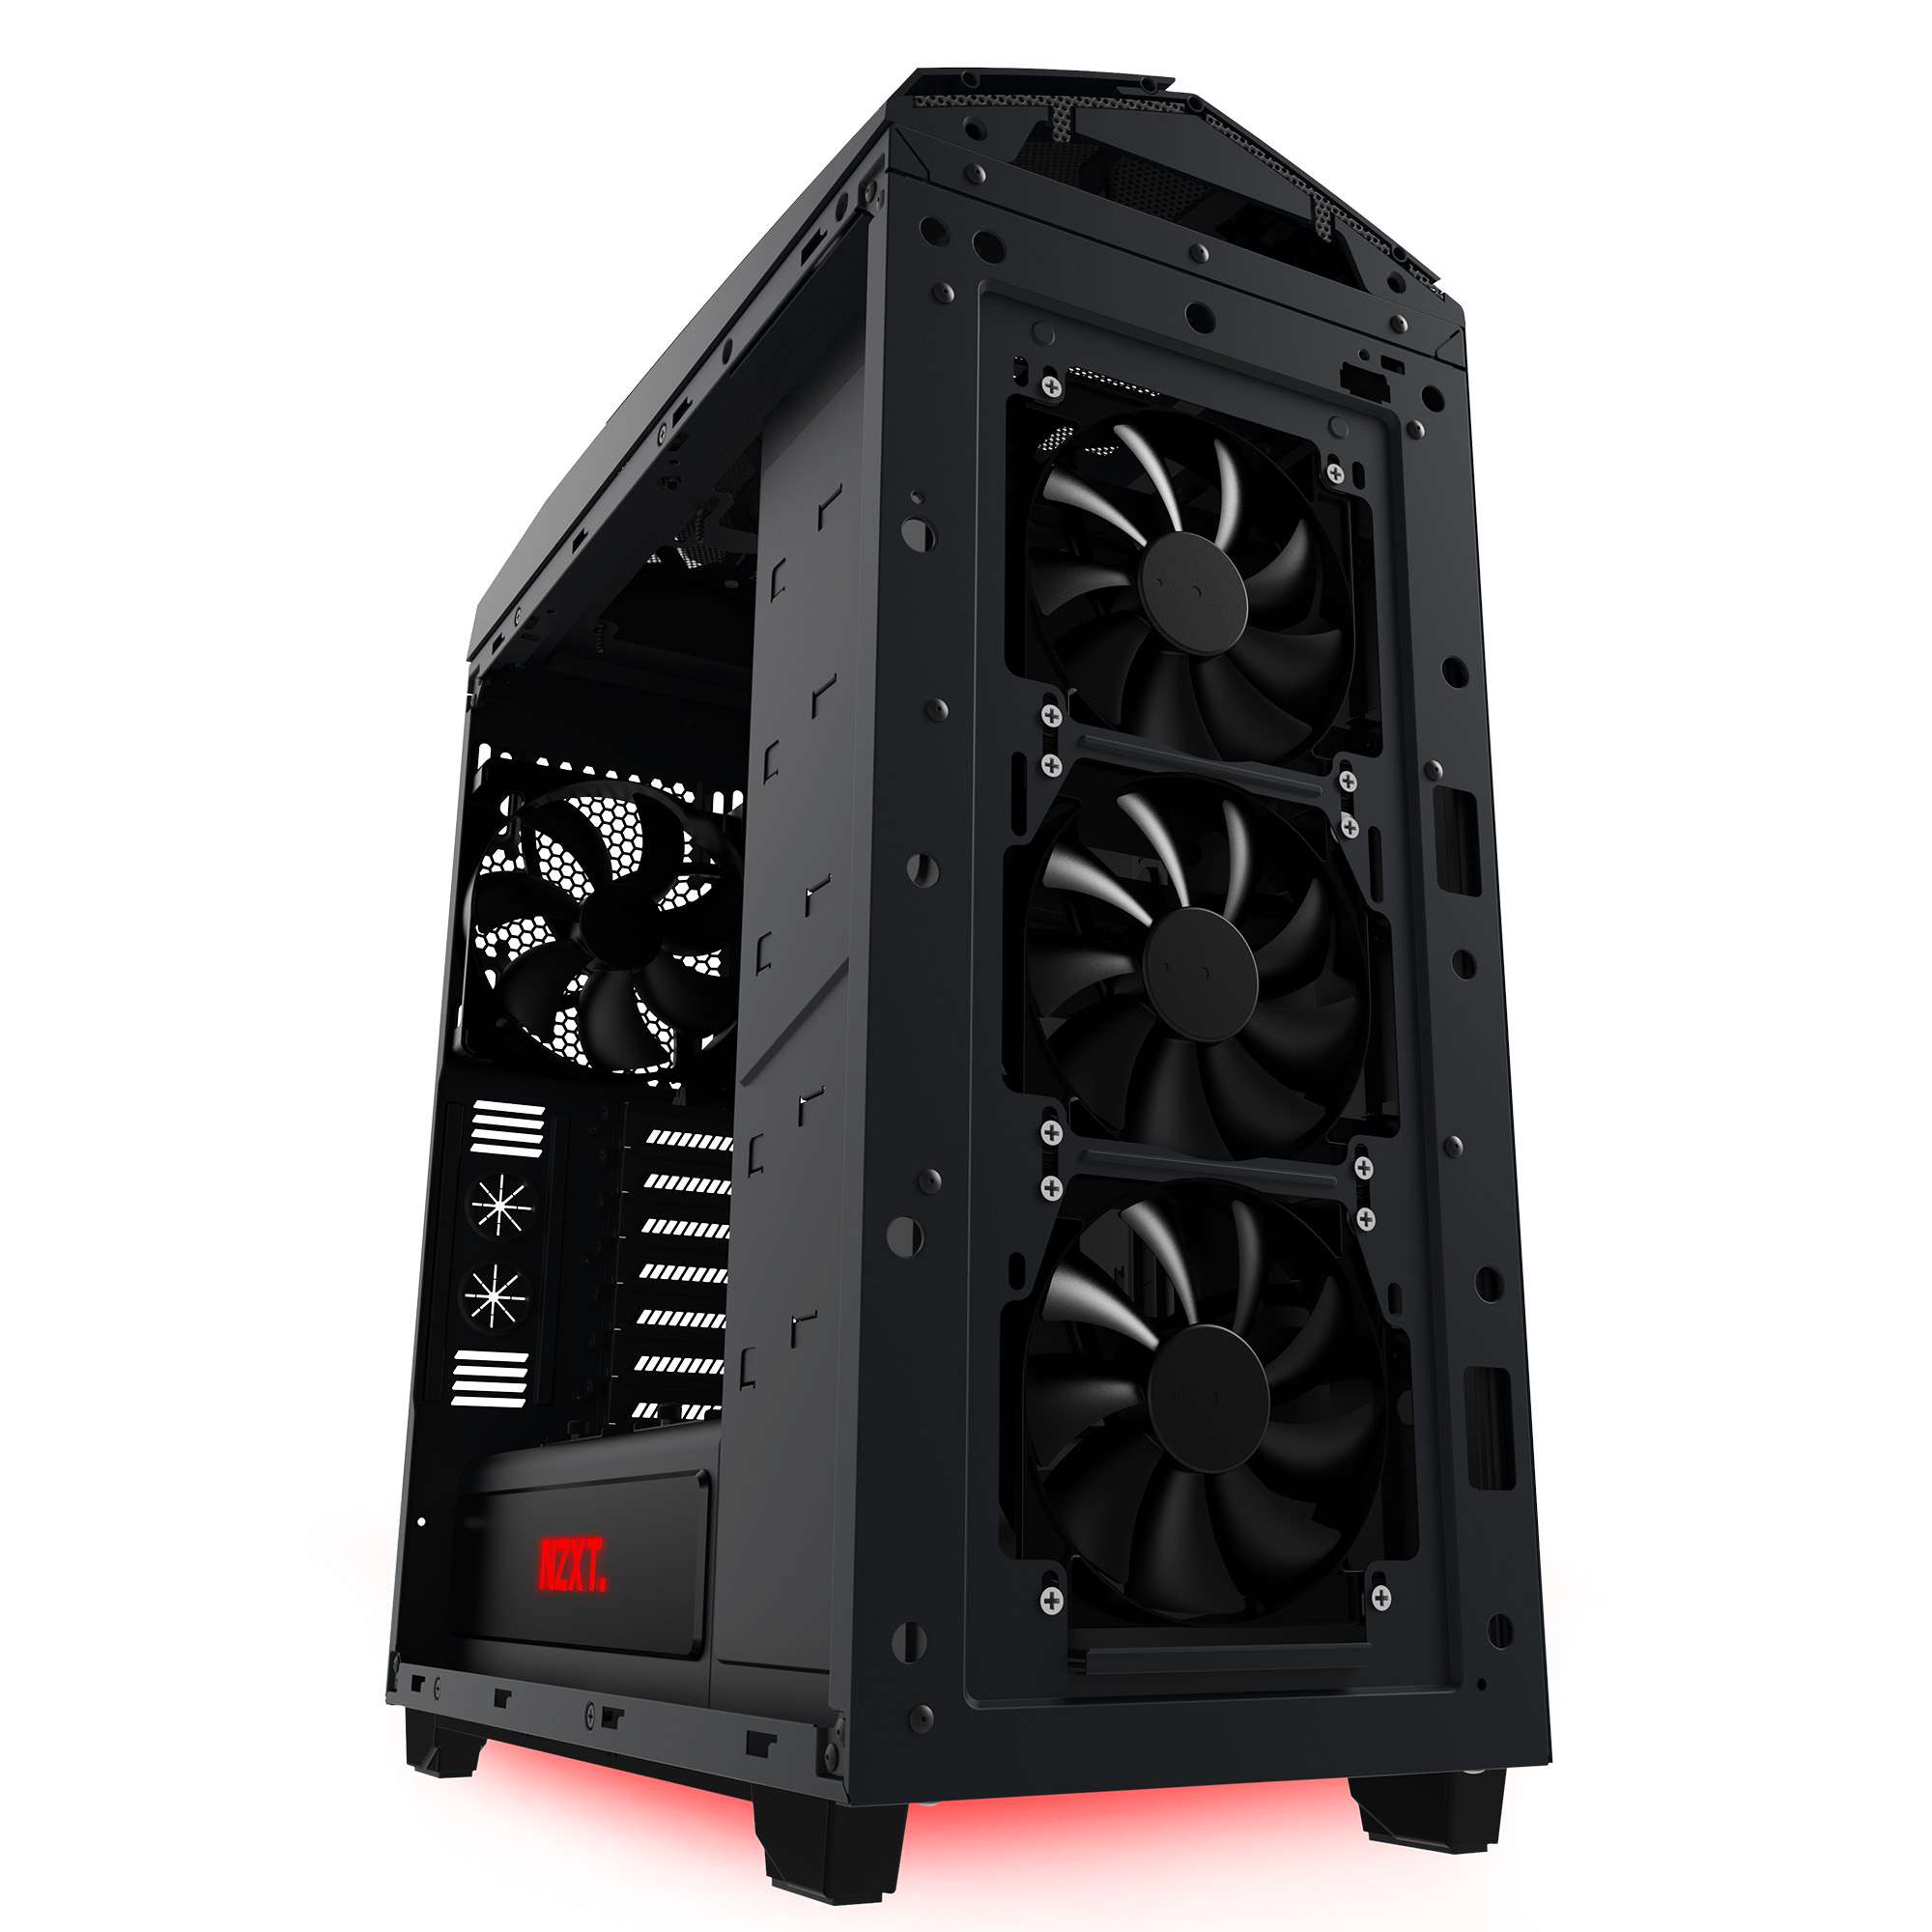 N450-case-black-frontfan